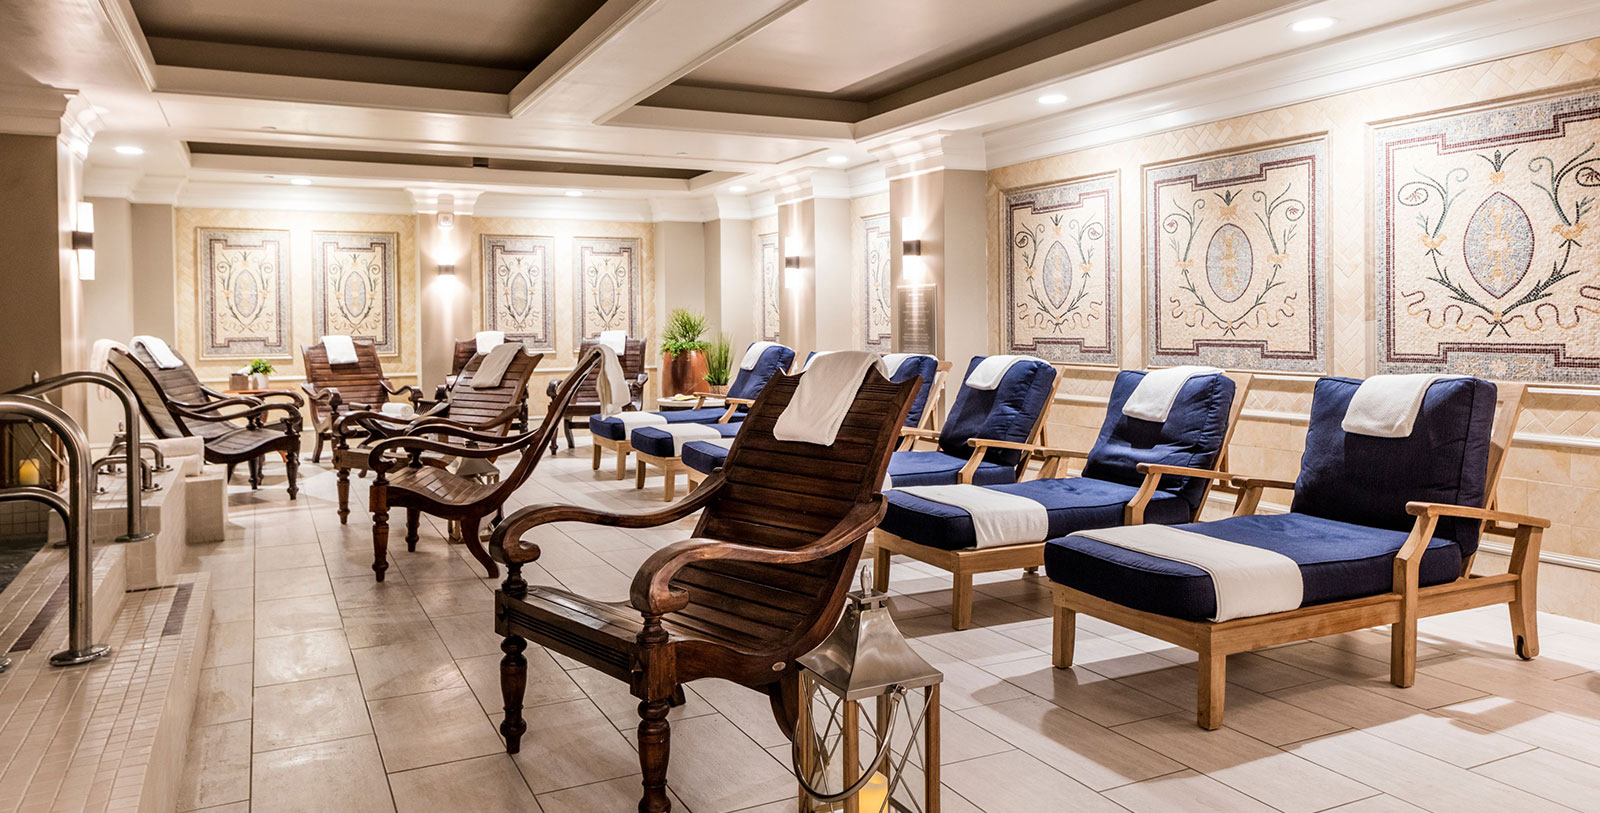 Image of Spa Quiet Room at Grand Hotel Golf Resort & Spa, 1847, Member of Historic Hotels of America, in Point Clear, Alabama, Spa